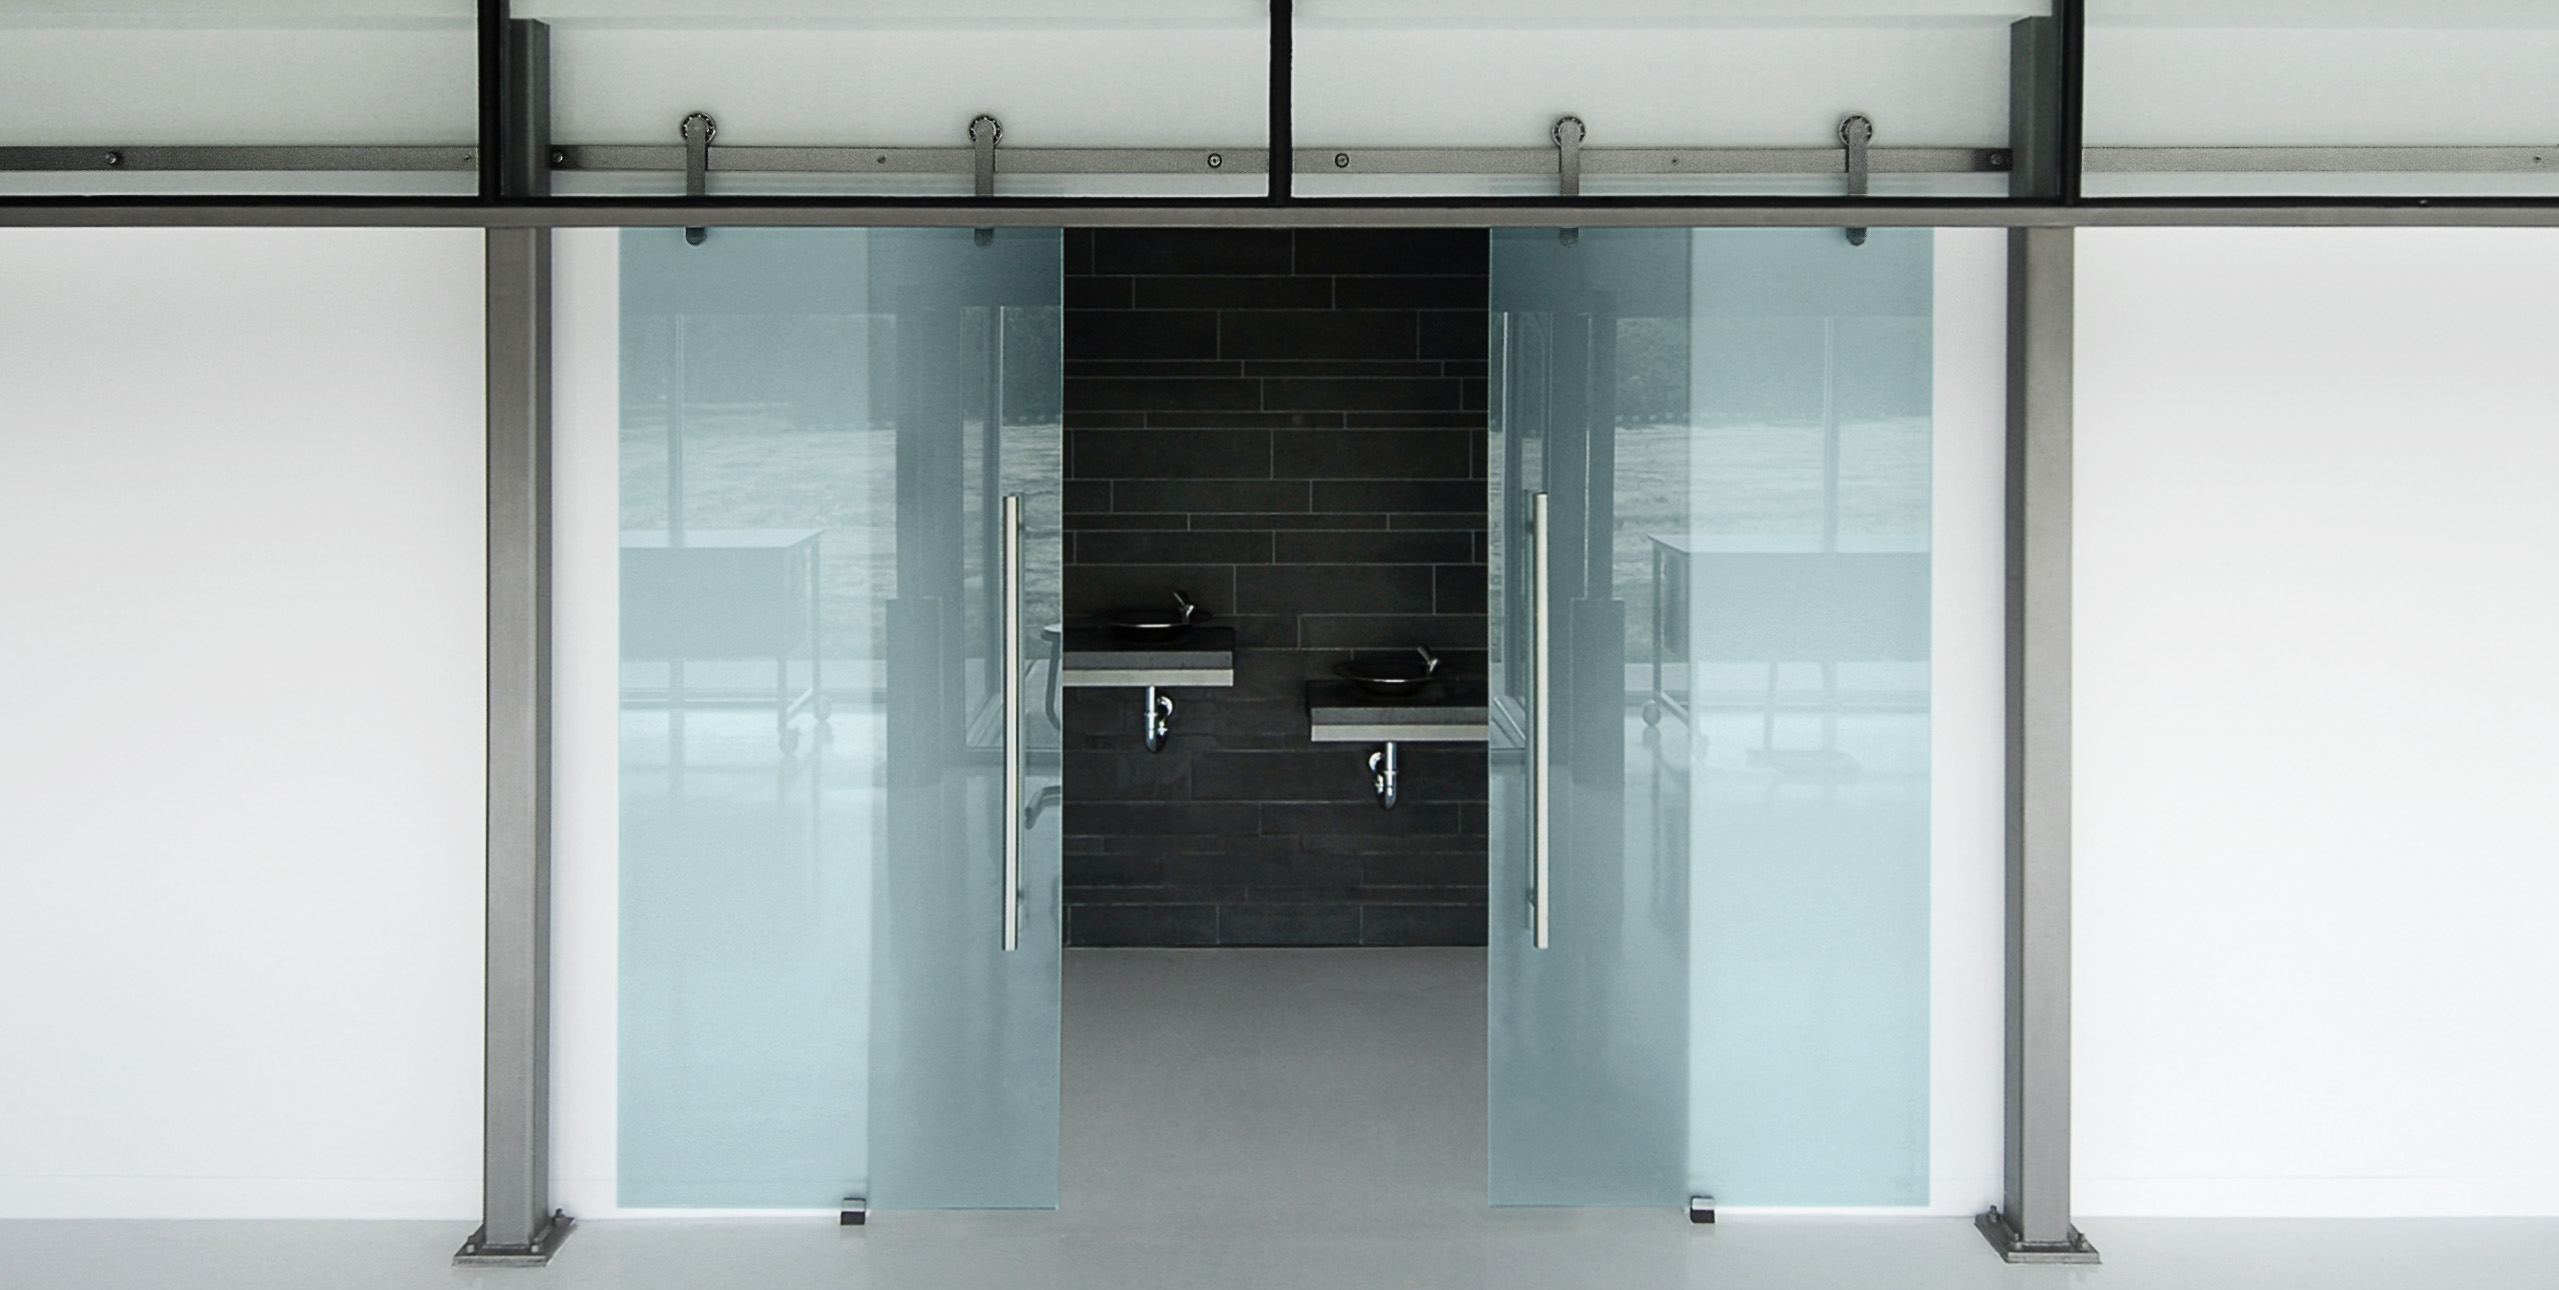 Oden-stainless-steel-sliding-door-system-in-face-mount